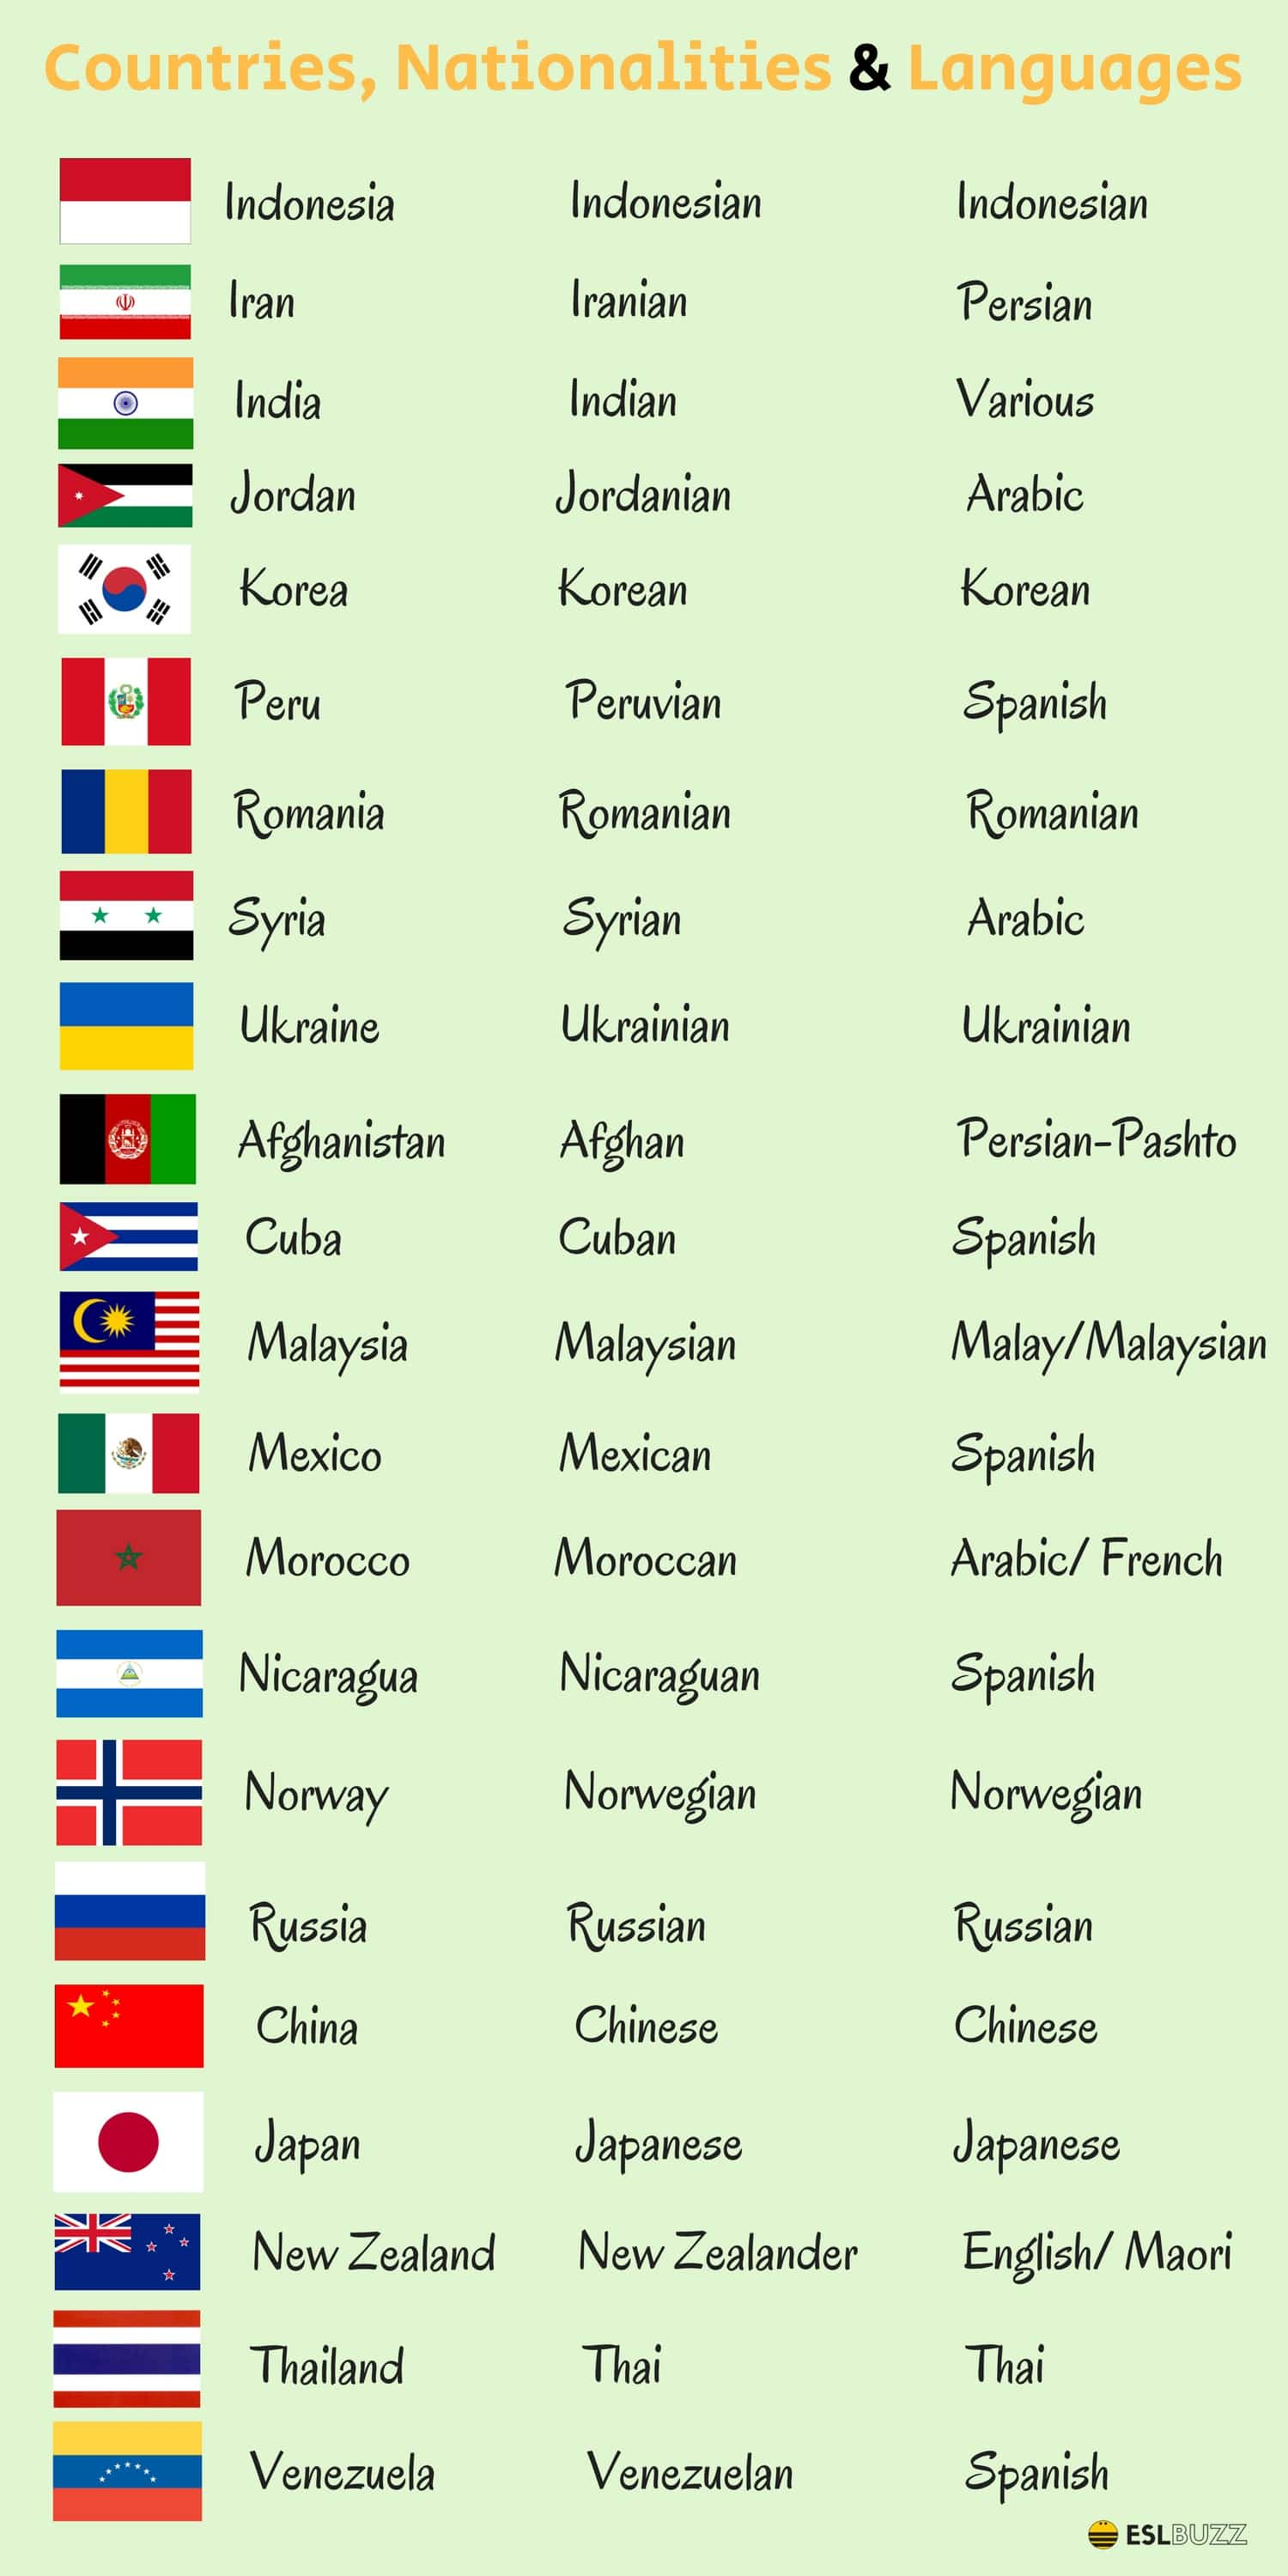 Countries, Nationalities and Languages in English 2